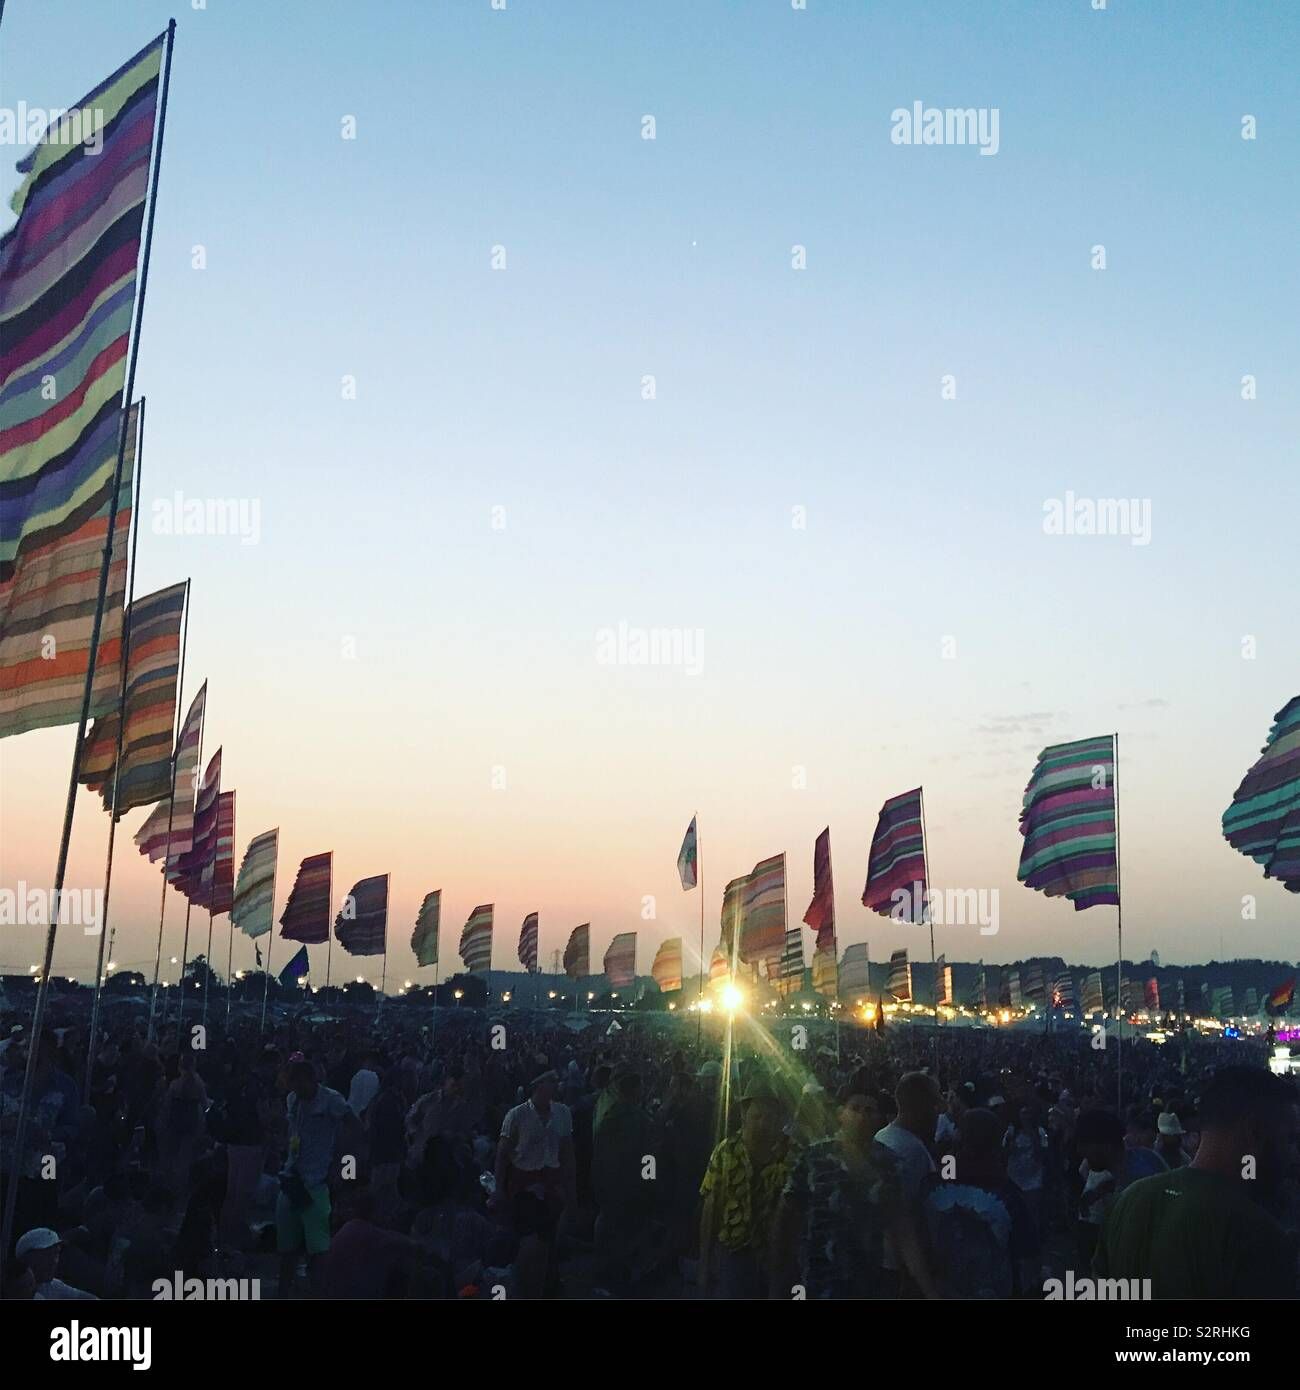 Sunset at the other stage, Glastonbury festival 2019 Stock Photo